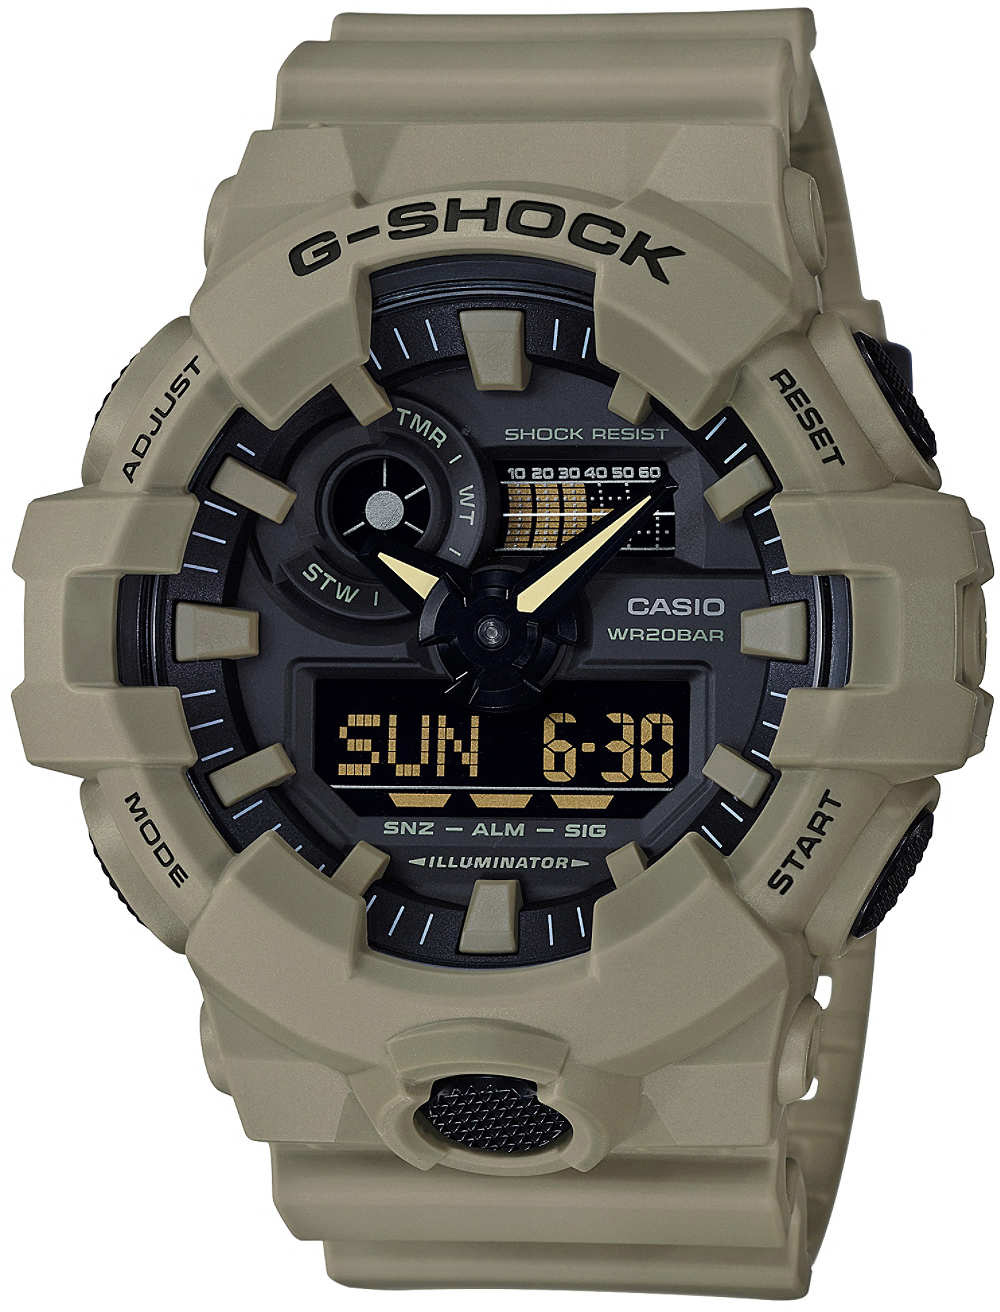 Casio G-shock GA-700UC-5A casio g shock ga 110tp 7a